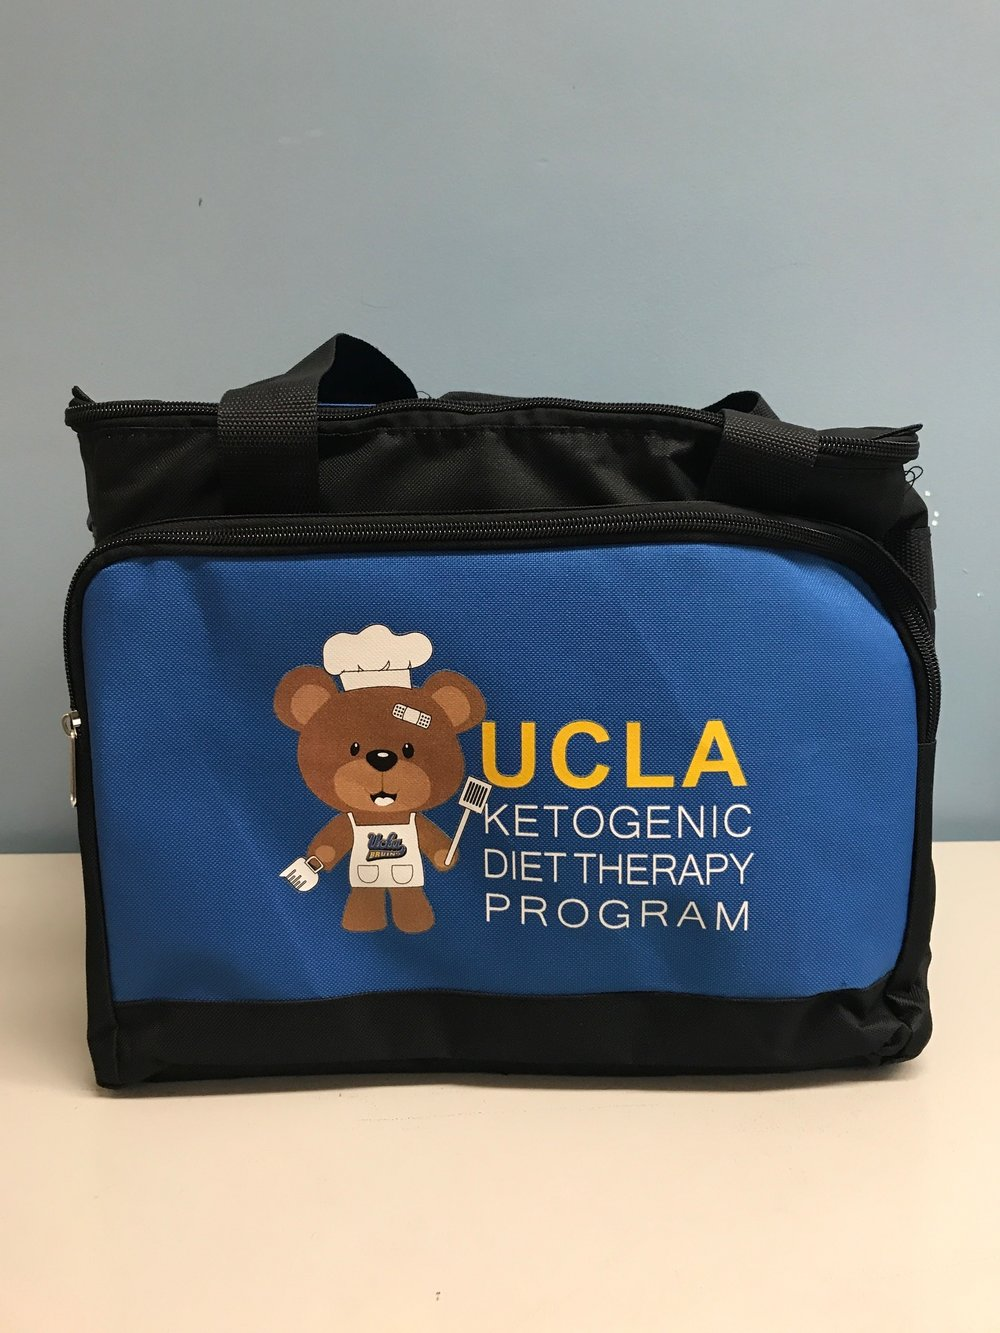 An example of a Ketogenic Basket.  Money raised is donated to UCLA to purchase these baskets for incoming Ketogenic Diet pediatric patients.  To help parents with this overwhelming diet we try to provide a little financial assistance with purchasing some of these items for them.  Some of the items that can be found in this cooler are a measuring scale, toothpaste, Tupperware, teas, candy molds, spatulas, and dry food items.  The total cost for one basket is $225.